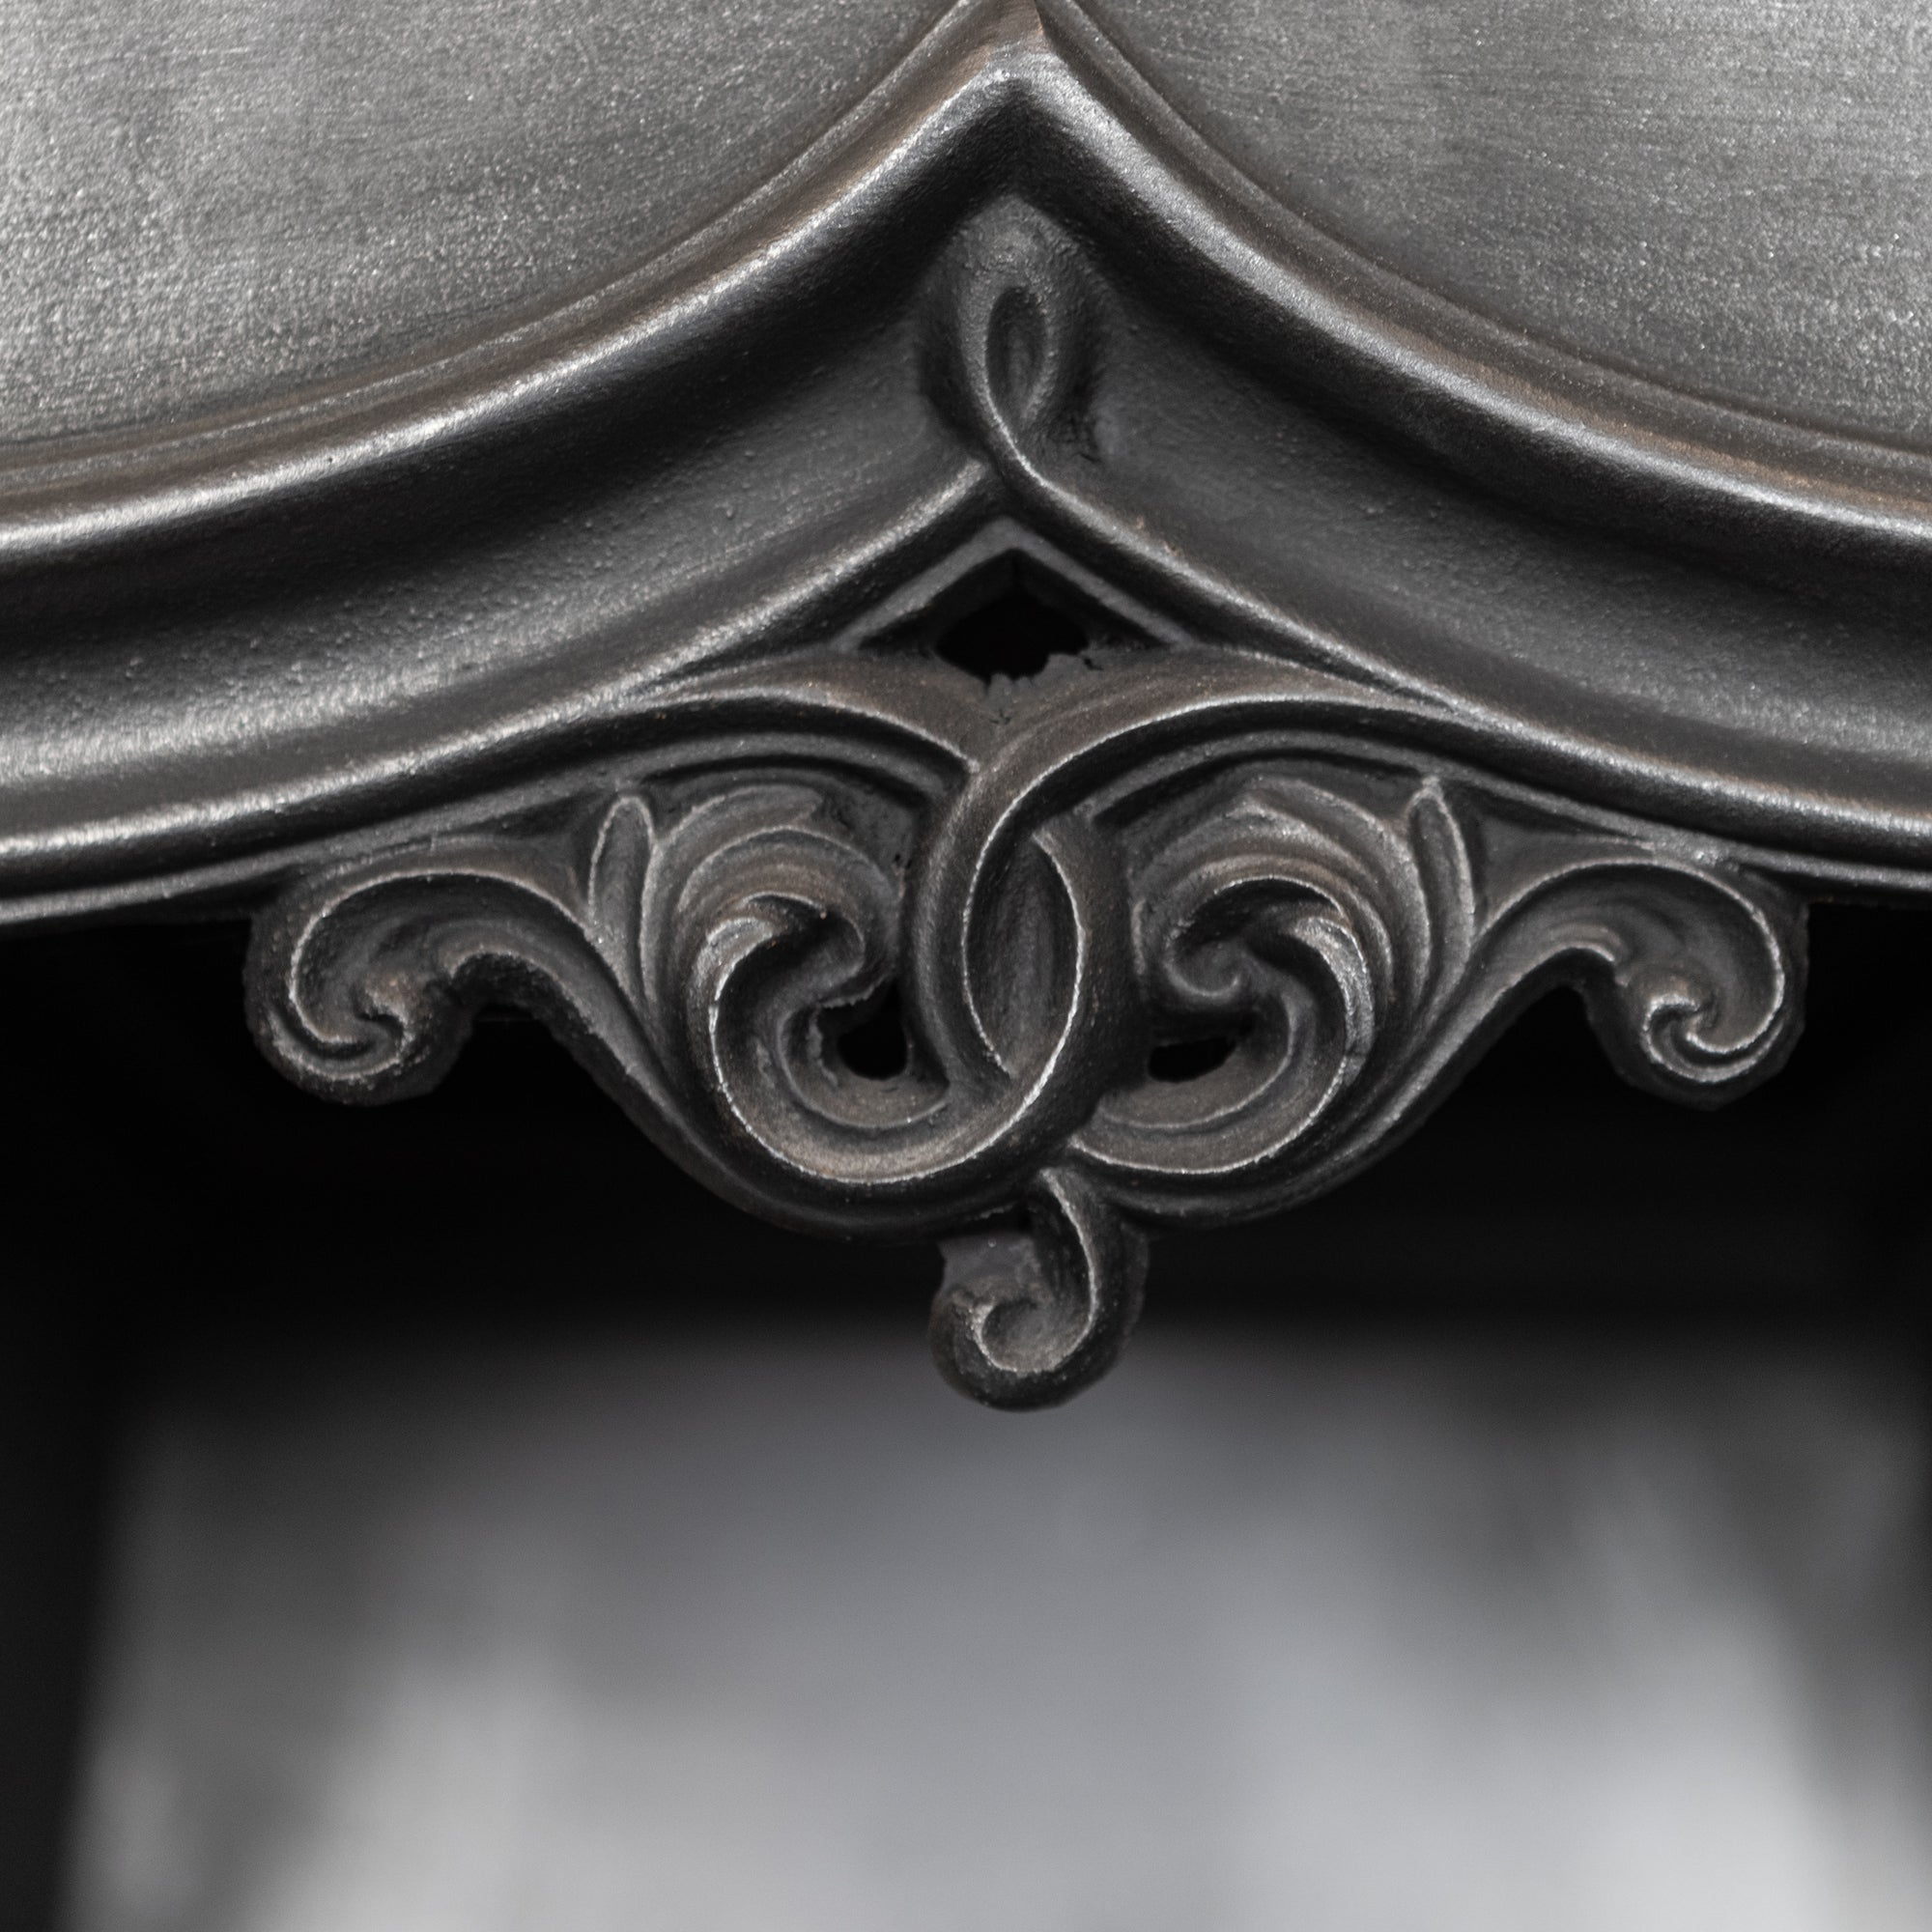 Reclaimed Victorian Gothic Revival Style Cast Iron Fireplace Insert | The Architectural Forum